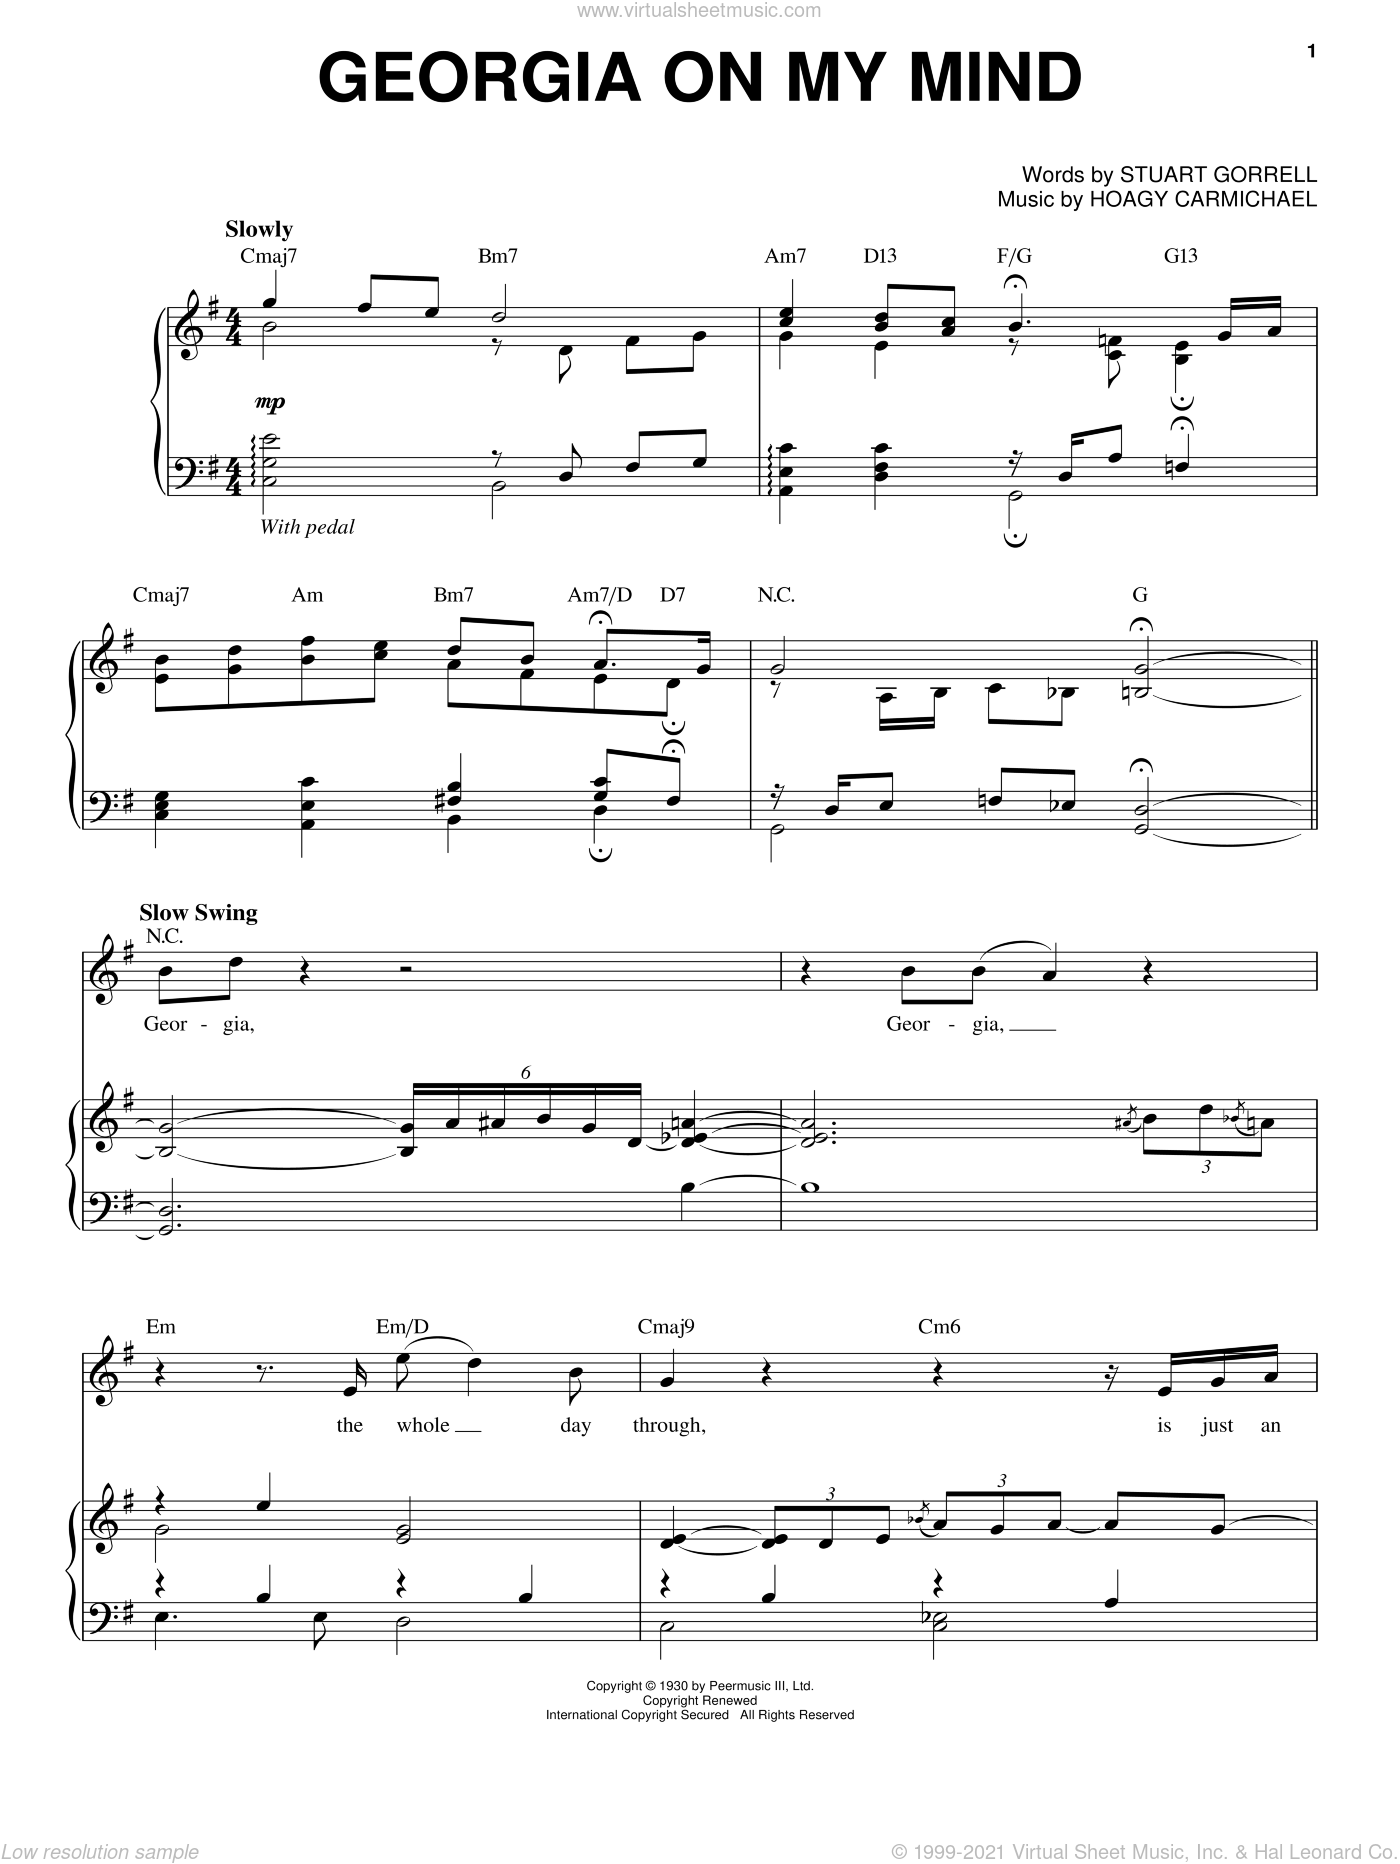 Georgia On My Mind sheet music for voice and piano by Steve Tyrell, Hoagy Carmichael and Stuart Gorrell, intermediate skill level